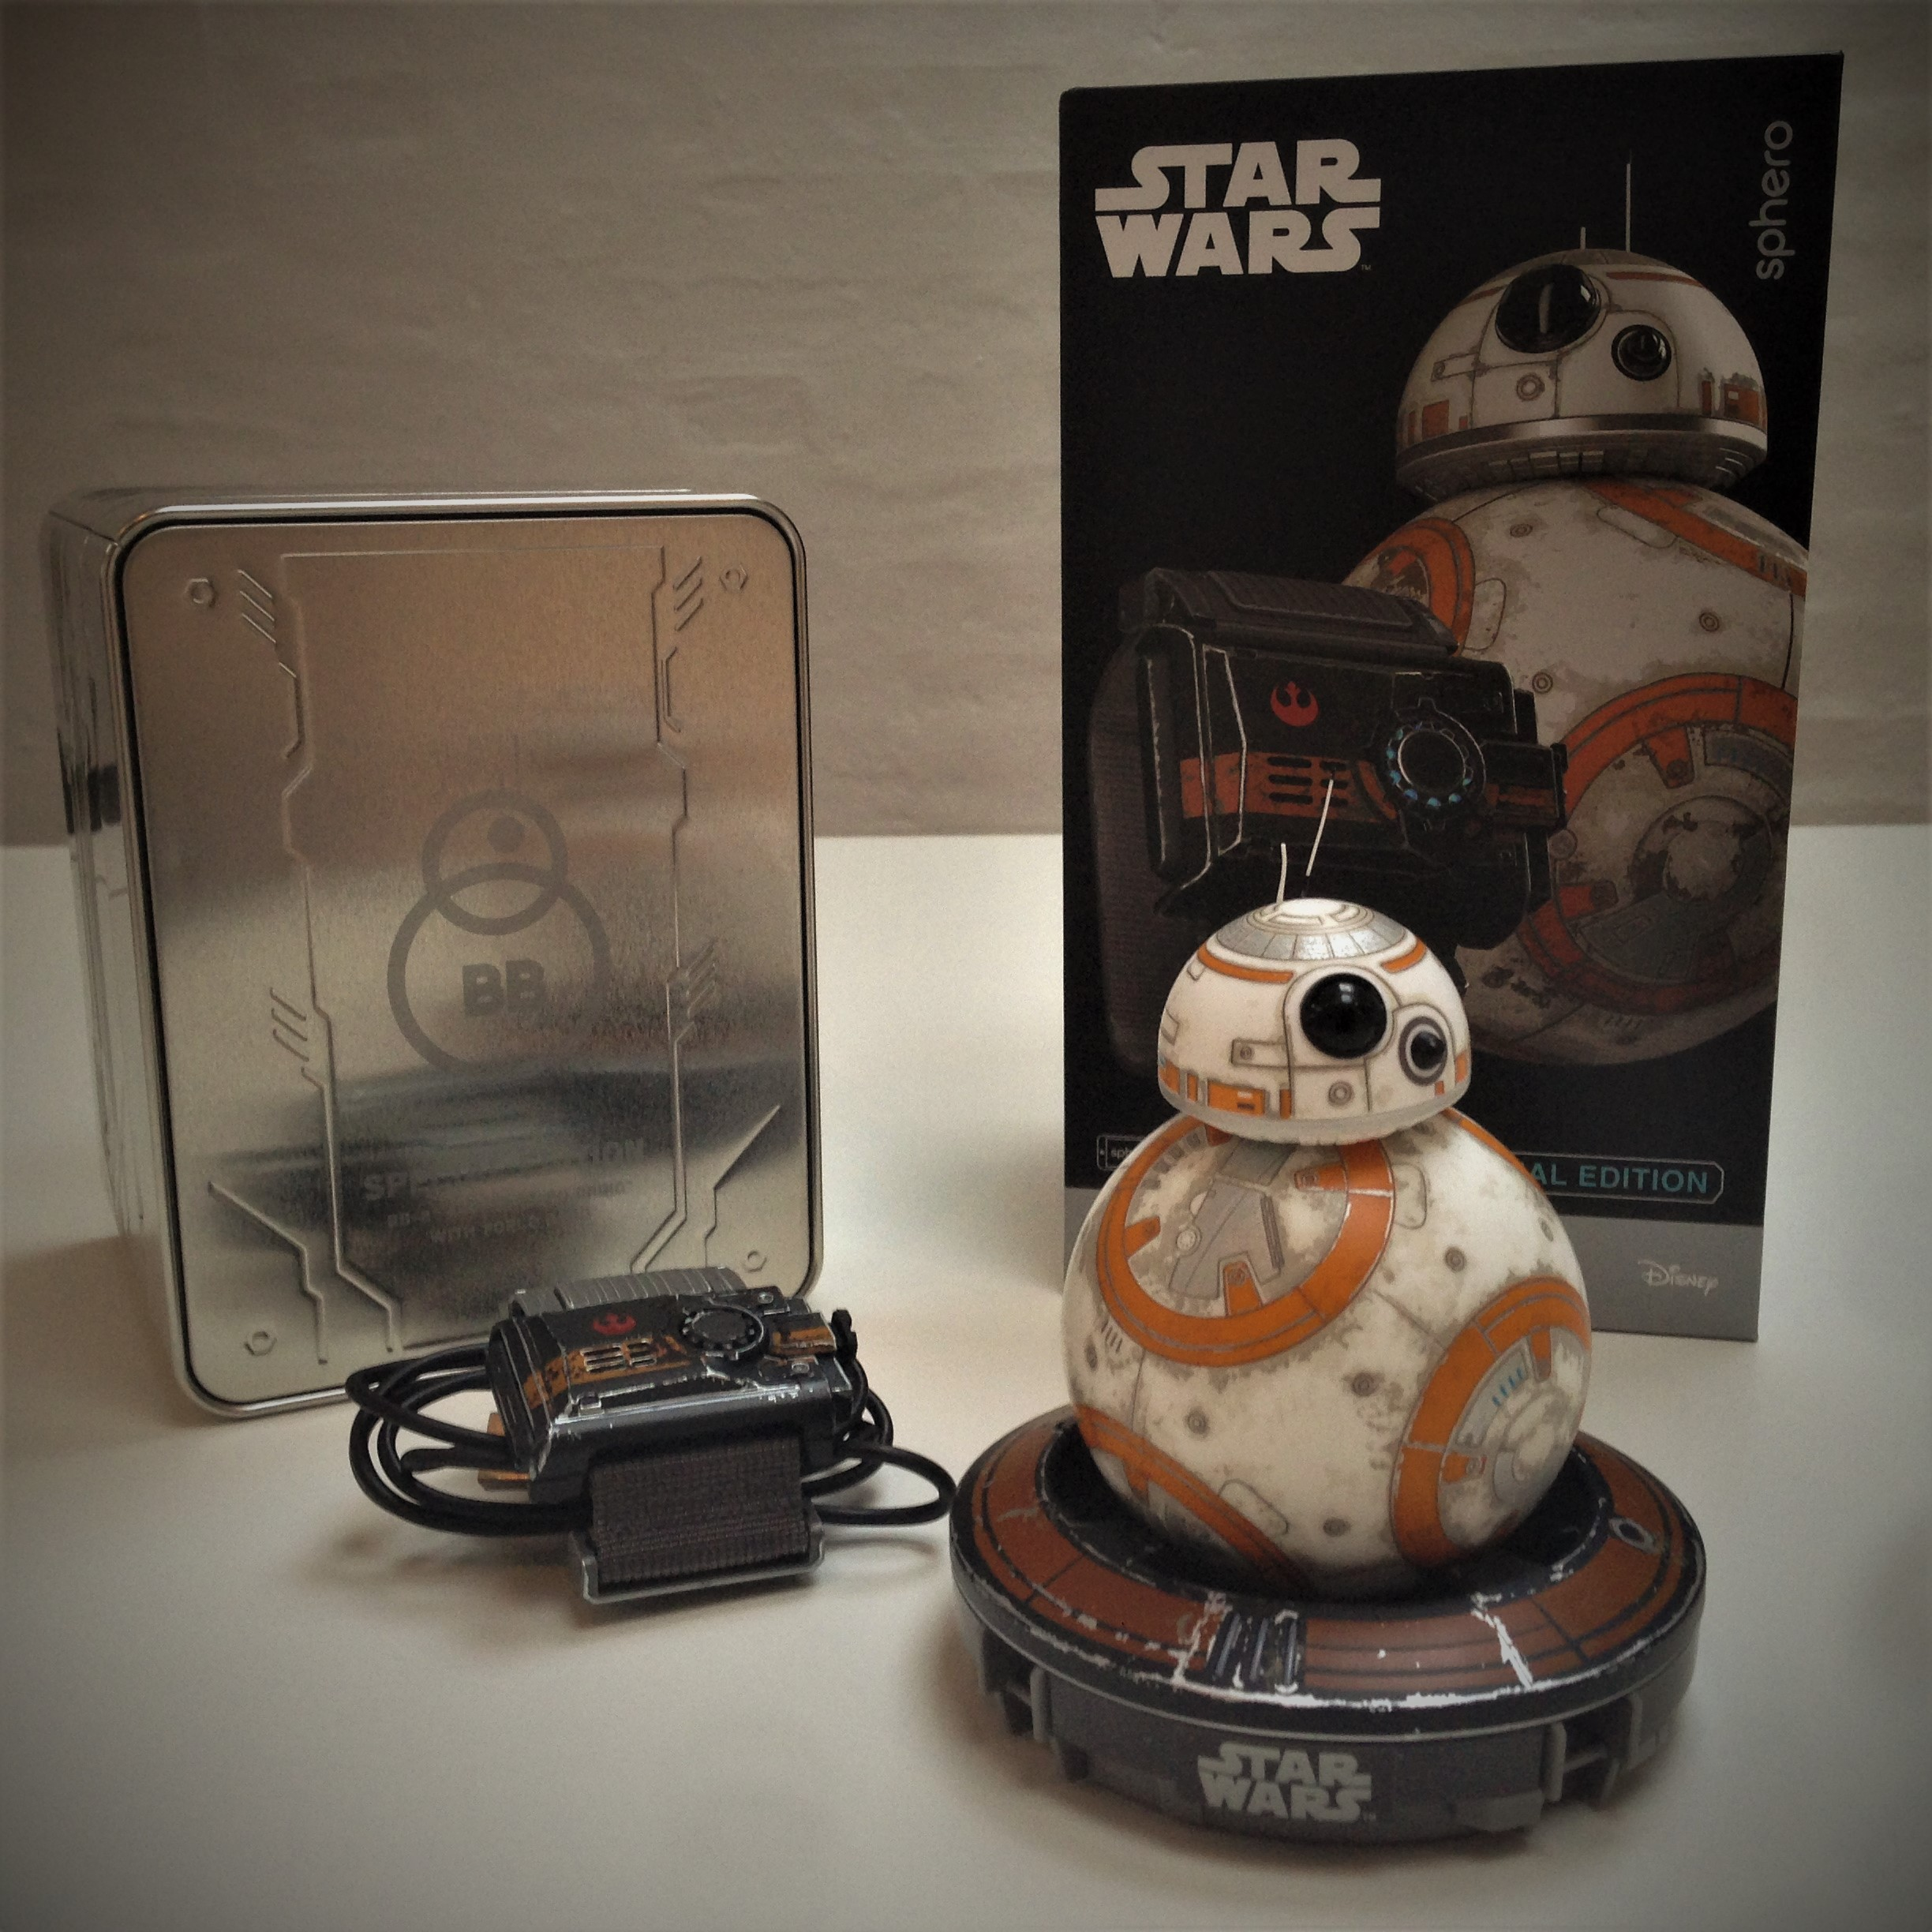 bb-8-star-wars-sphero-battle-worn-bb-8-disney-coolstuff-fiktion-kultur-6